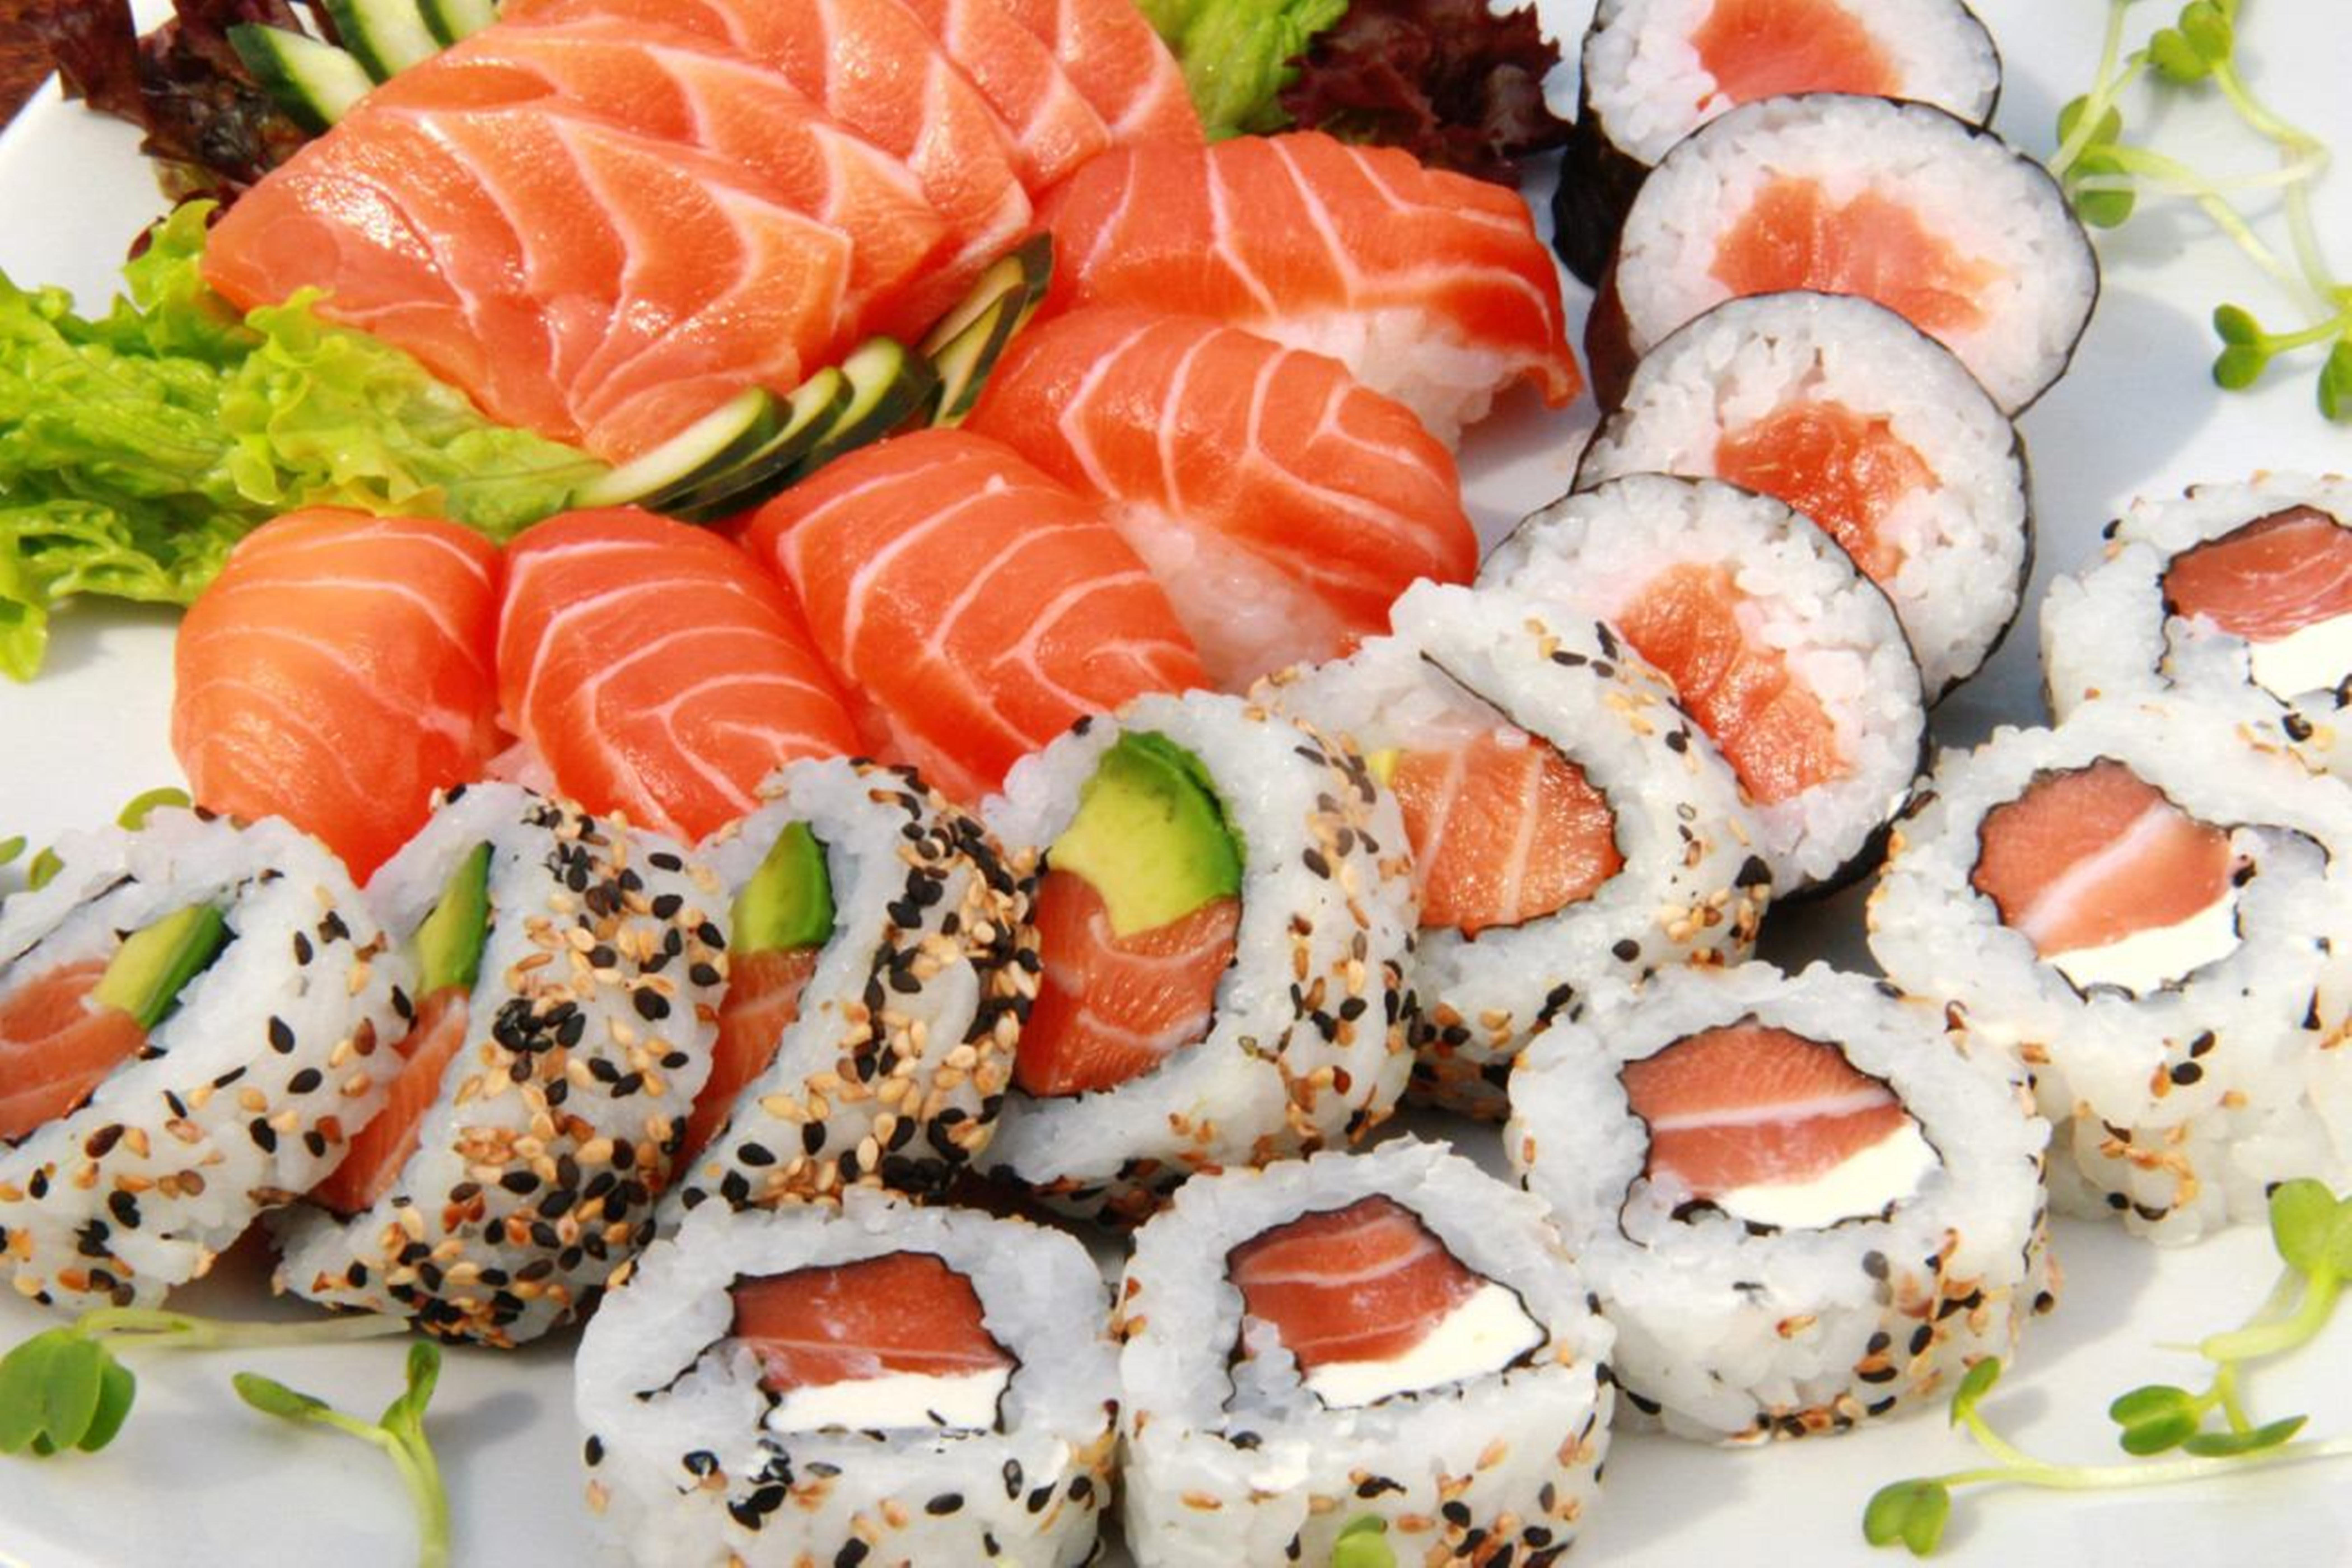 Does your sushi contain parasites BugBitten